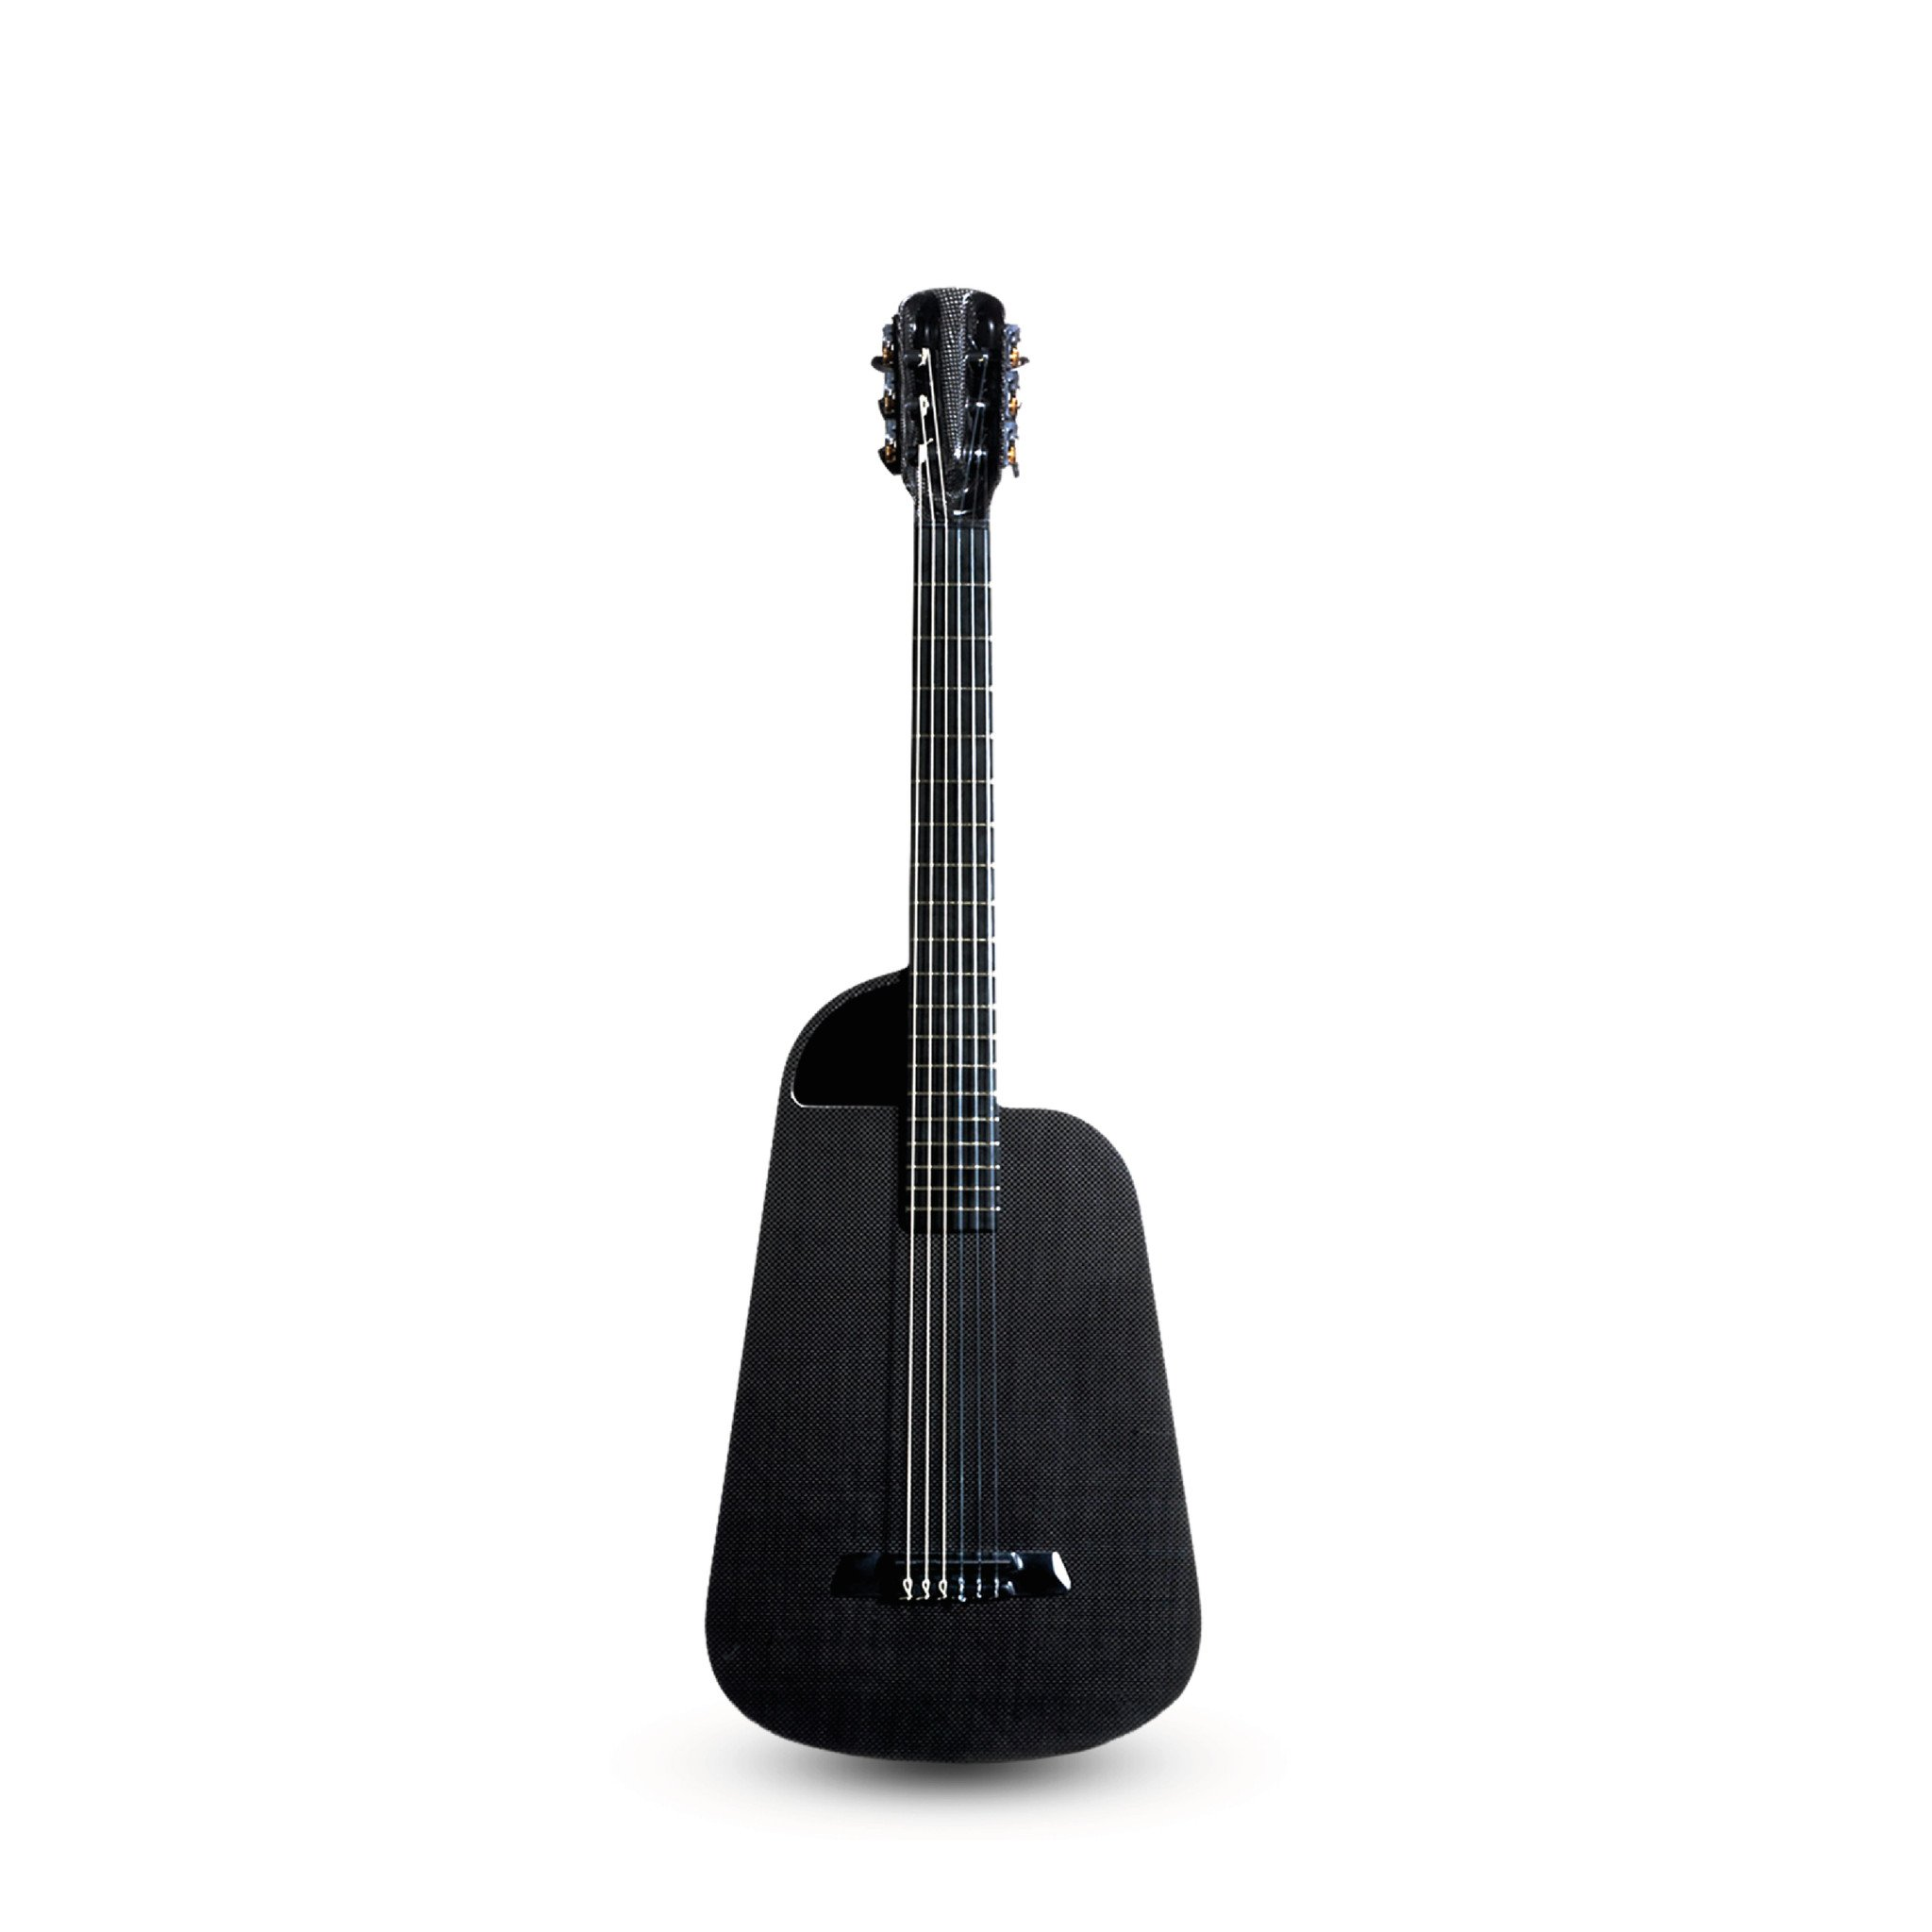 Blackbird Rider Carbon Fiber Nylon String - Blackbird Guitars